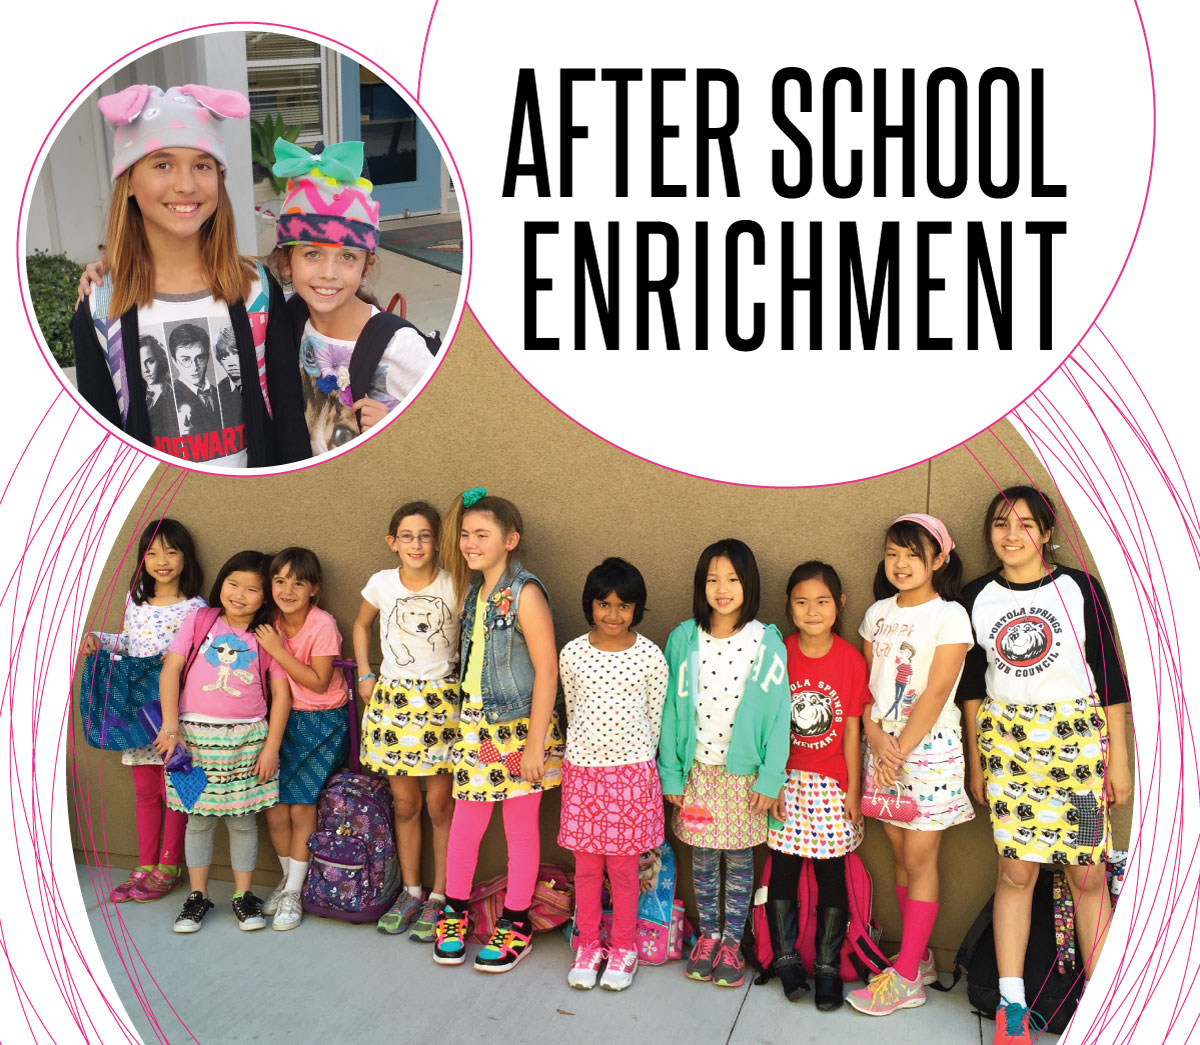 After School Enrichment Sewing Classes